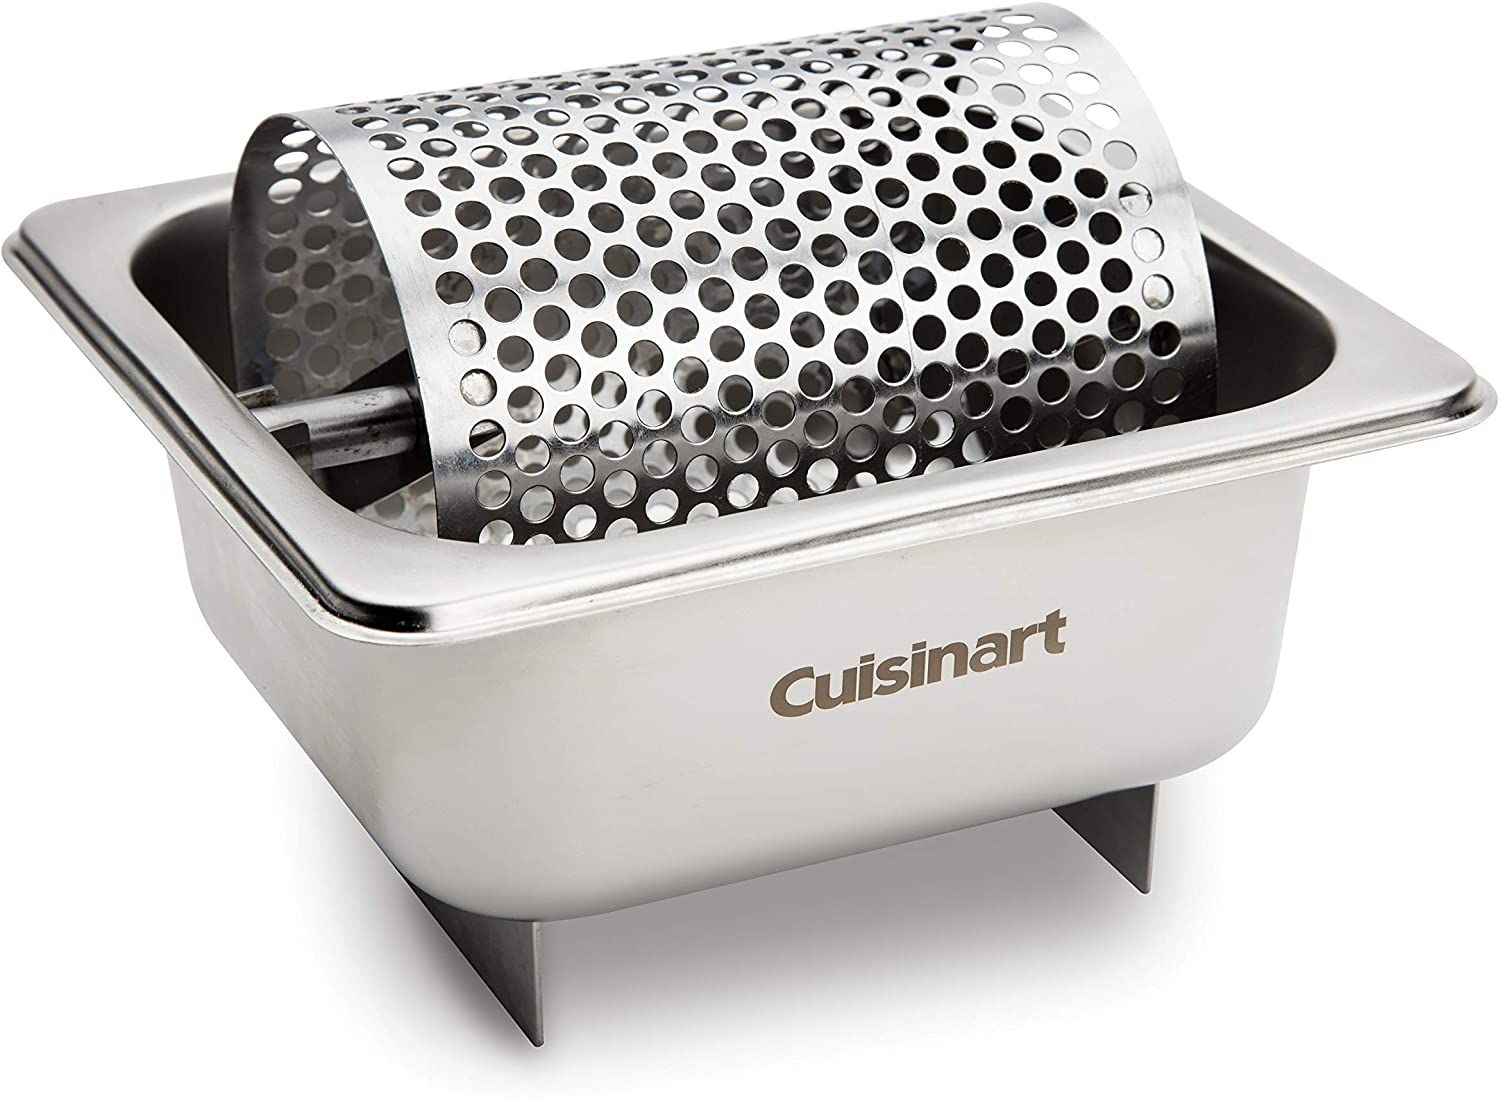 Review of Cuisinart CBW-201 Butter Wheel Stainless Steel